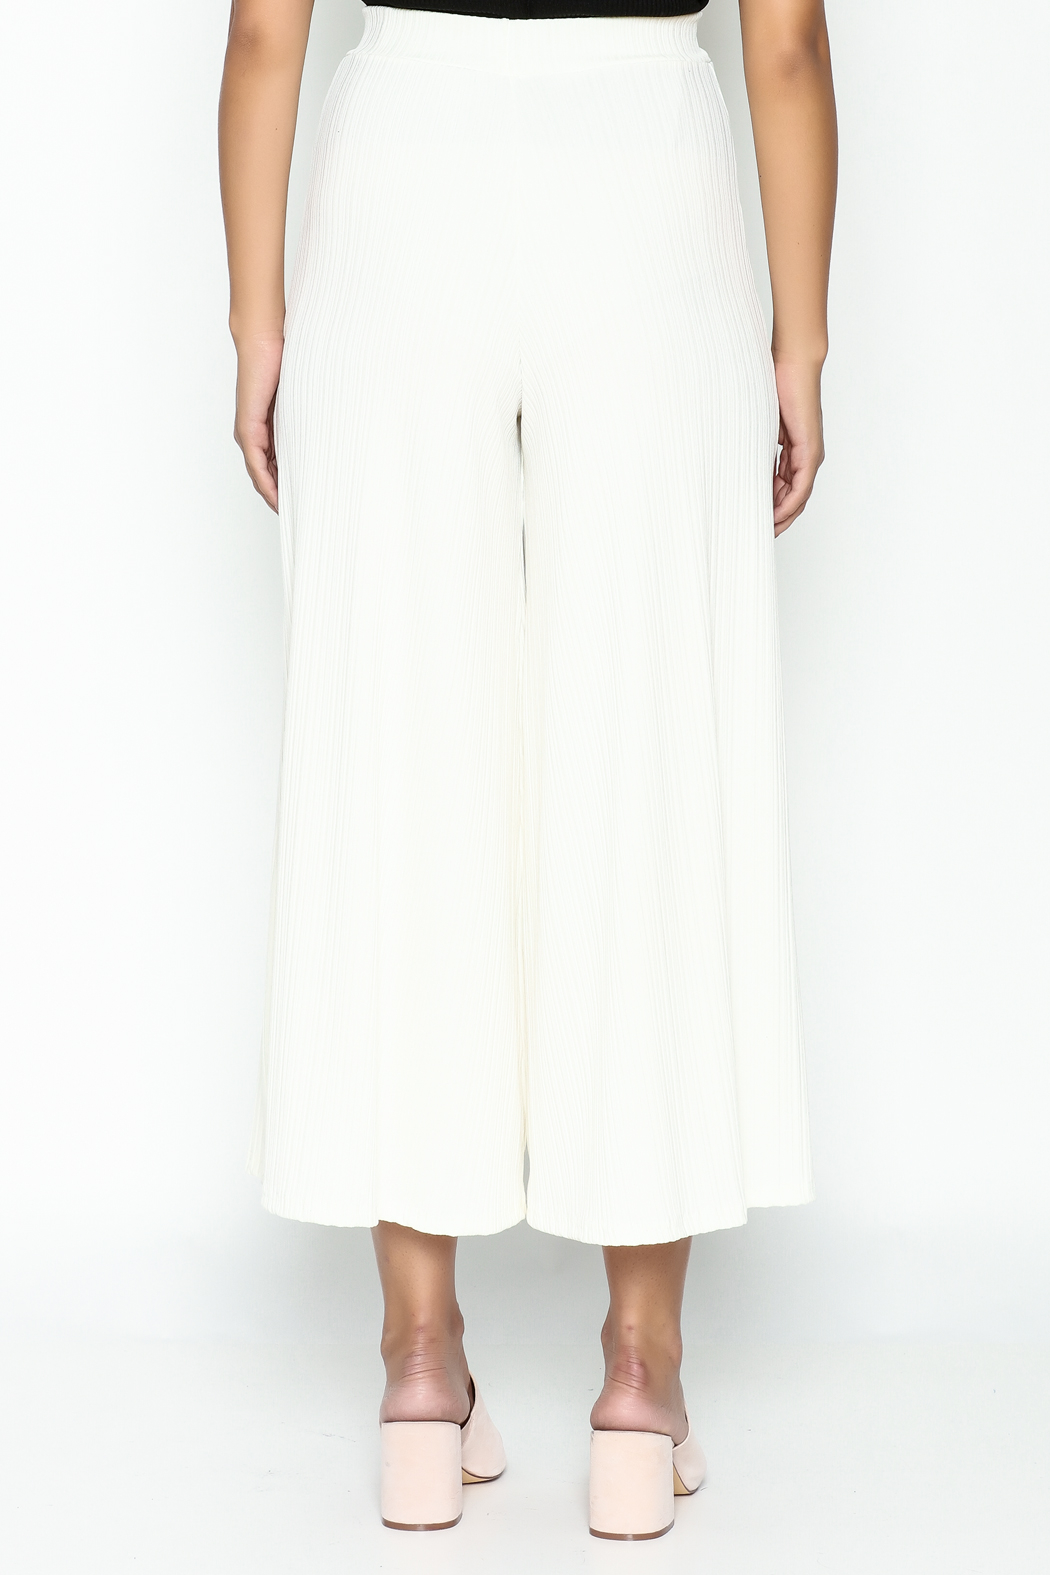 Pinkyotto Ribbed Knit Palazzo Pants - Back Cropped Image